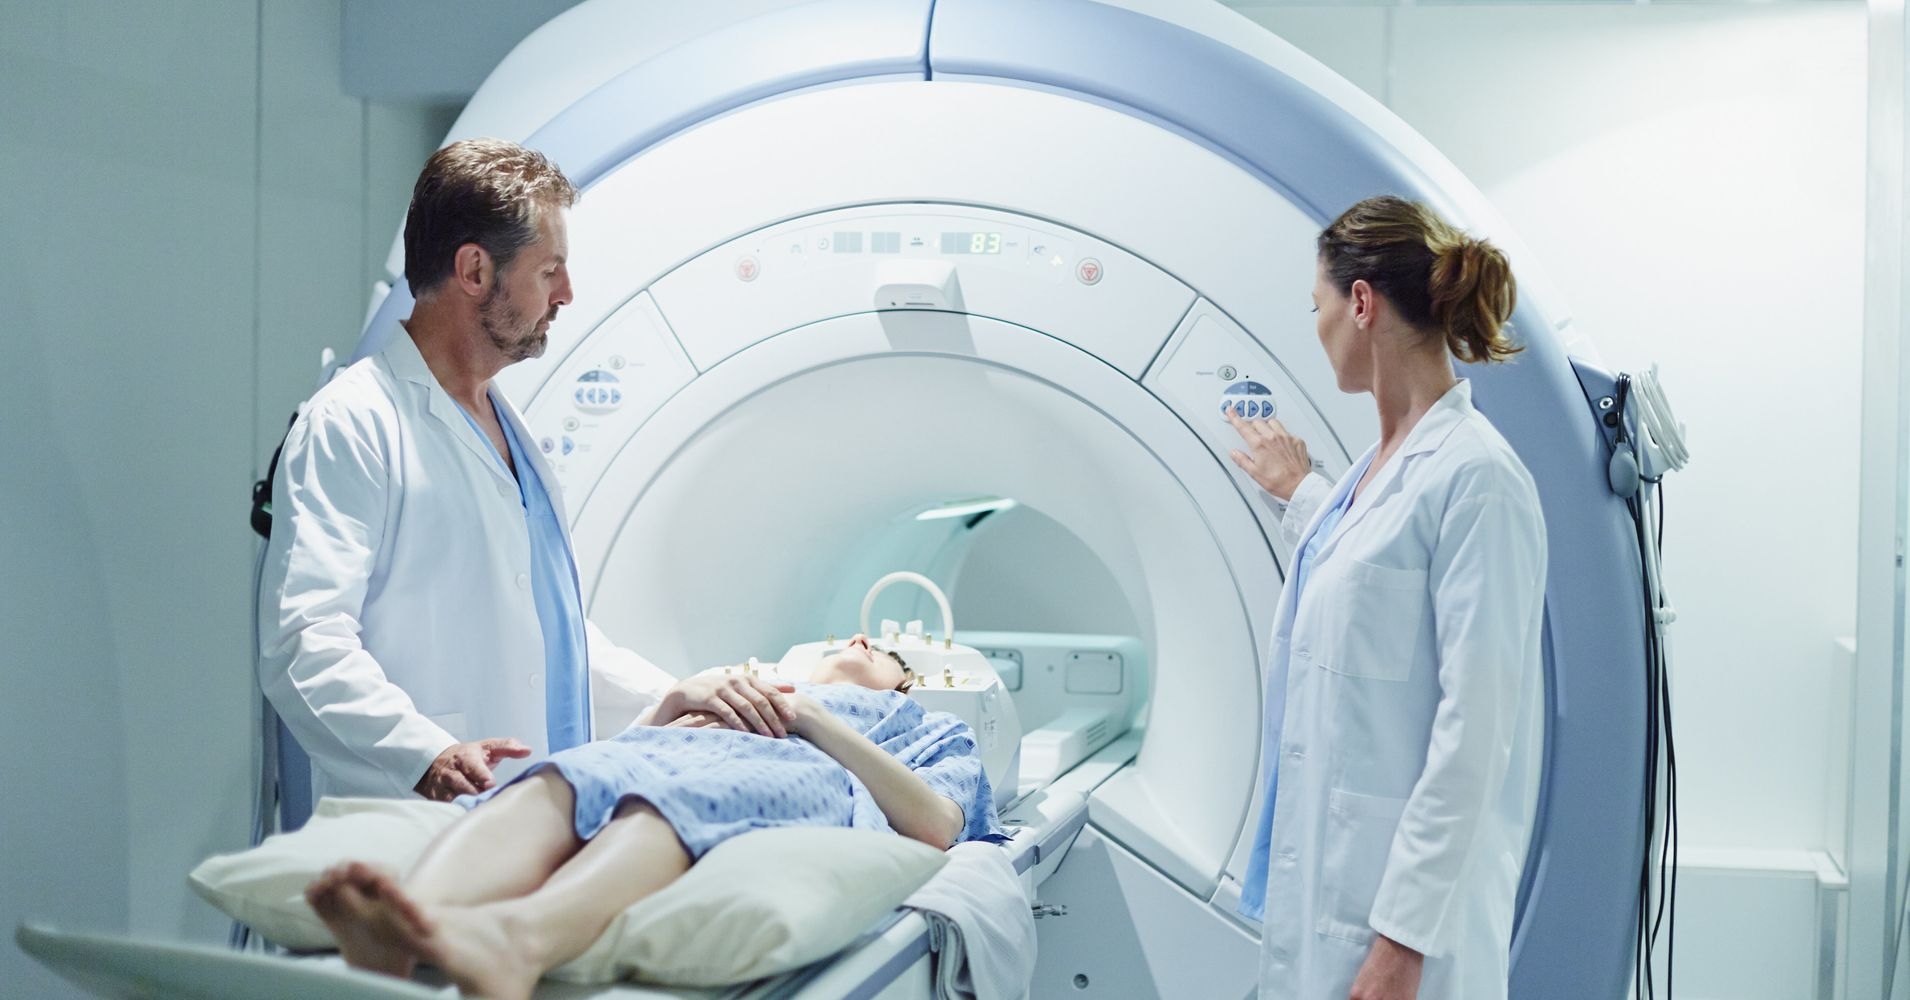 Scanxiety: 8 Tips To Cope With Scan Anxiety | HuffPost